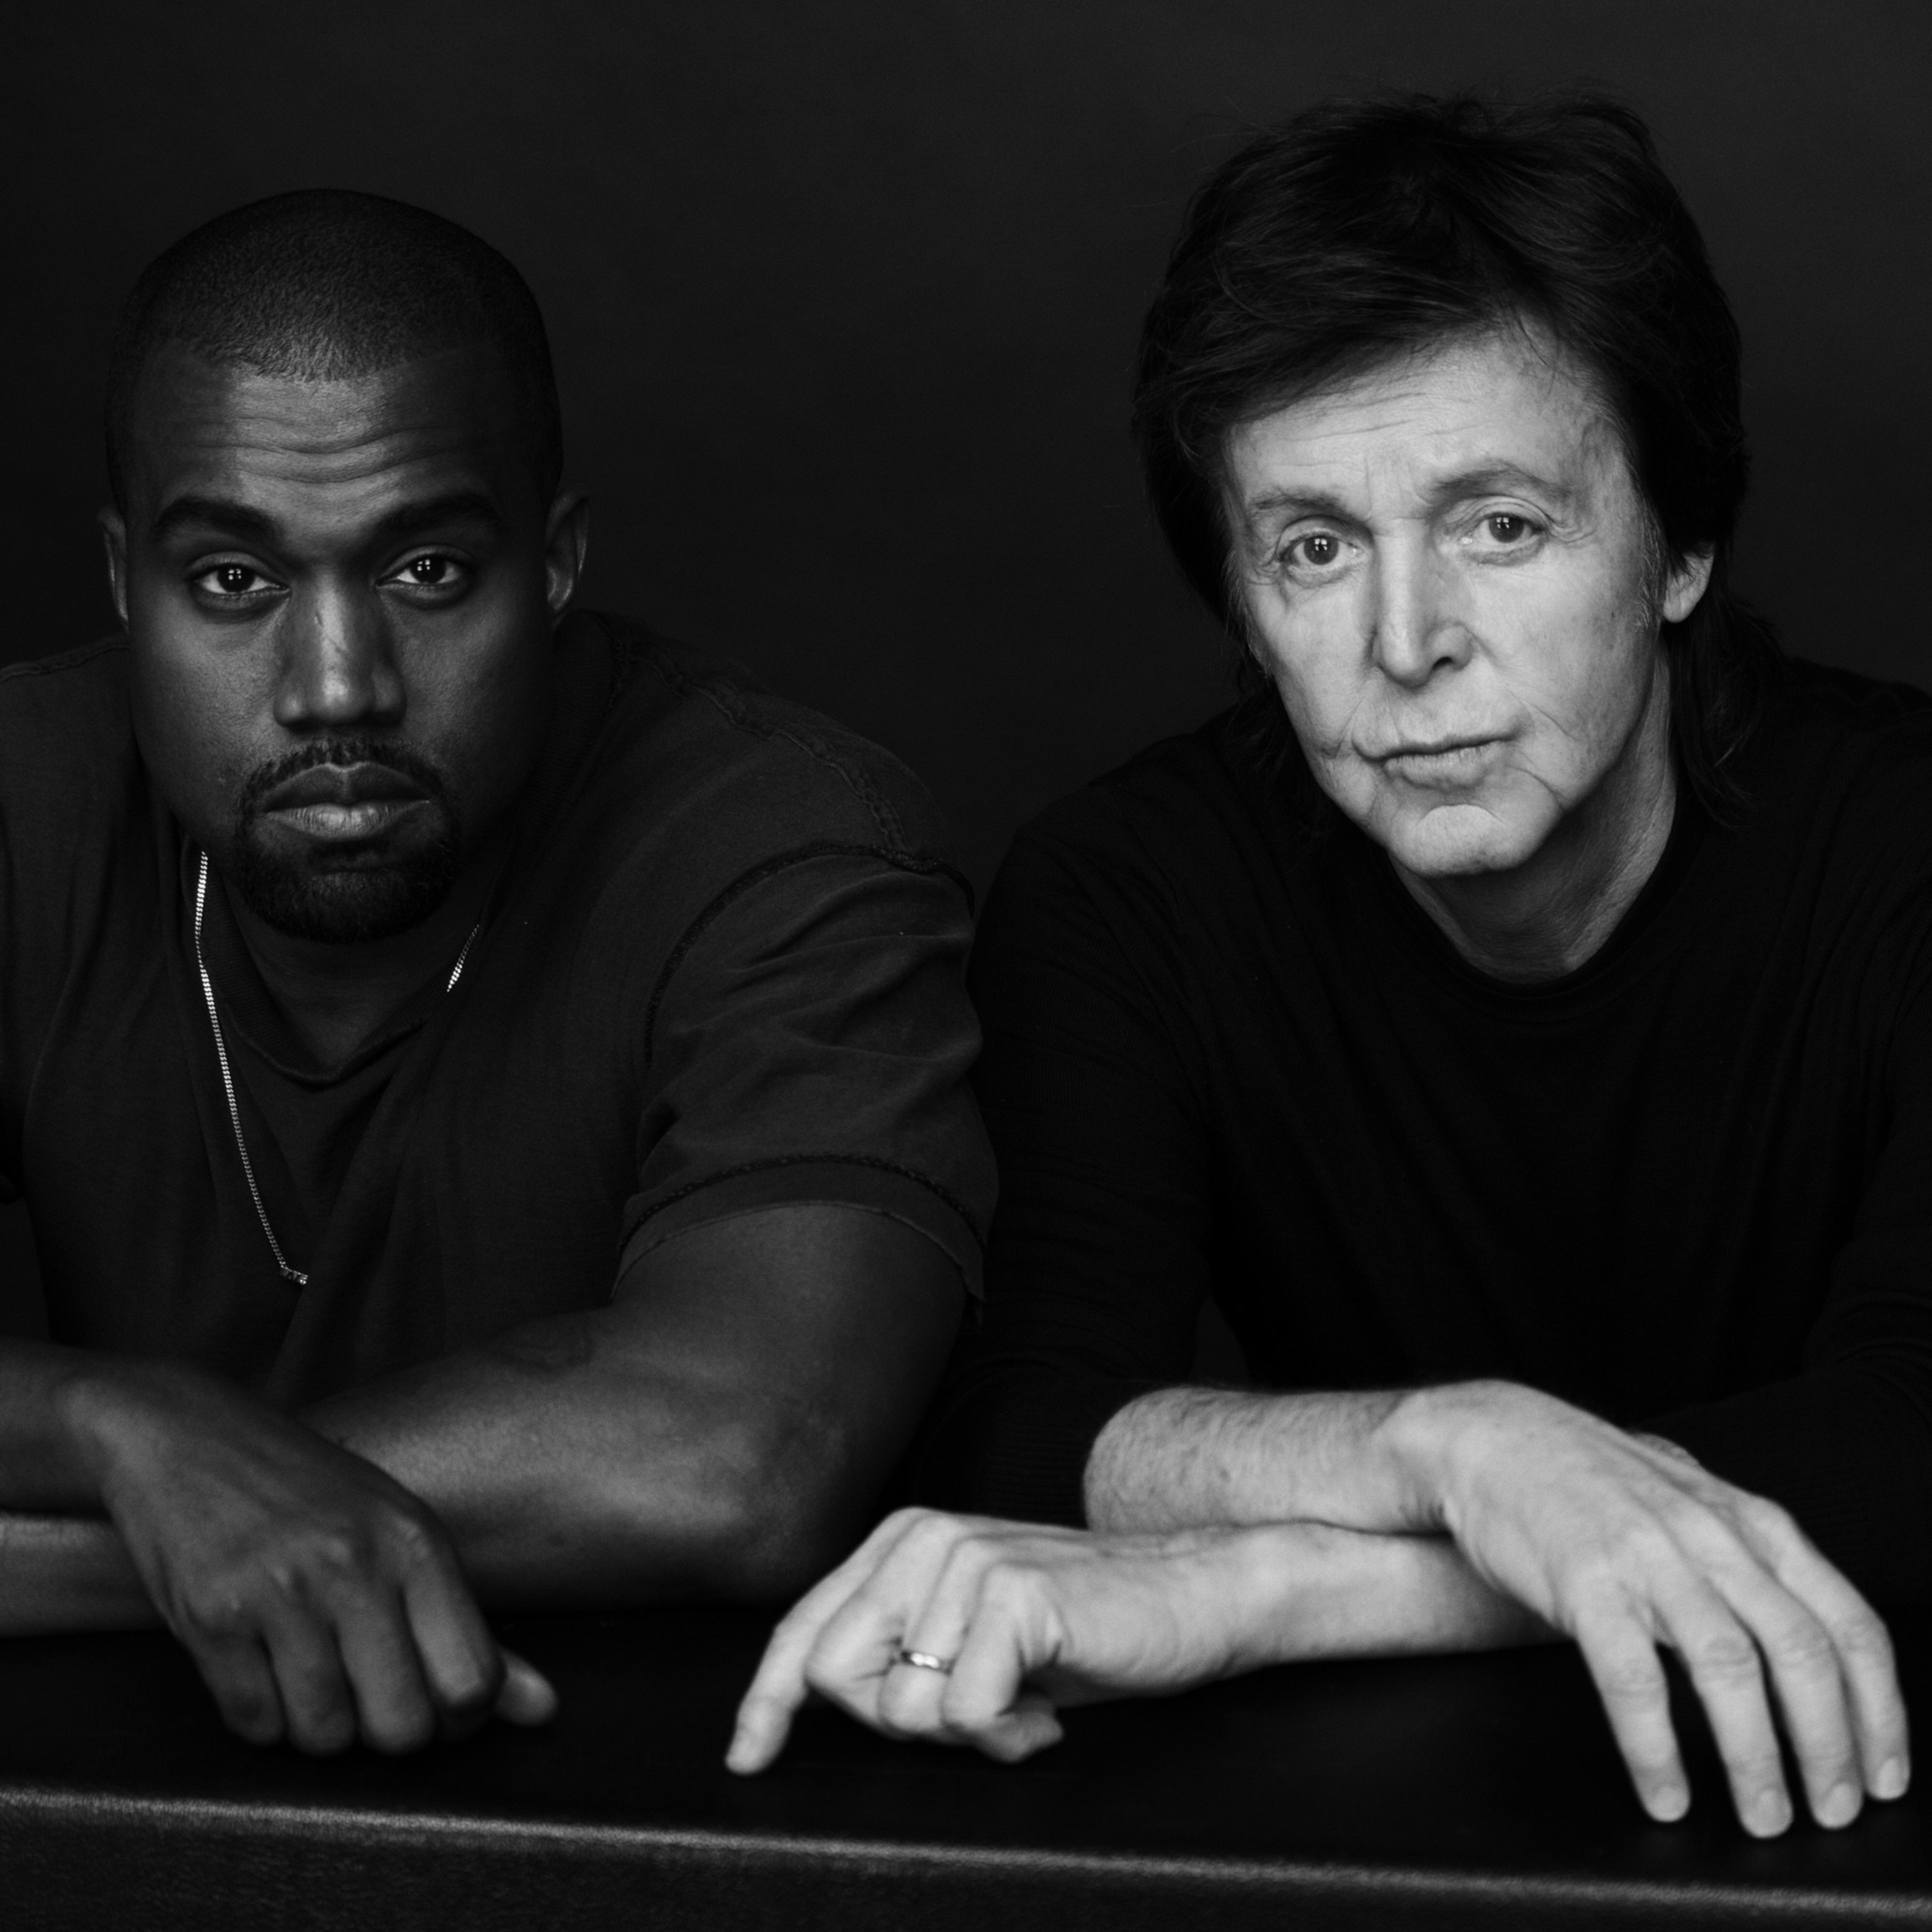 """Kanye West Releases """"Only One,"""" First Single From Forthcoming Solo Album & First Reveal Of Several Musical Collaborations With Paul McCartney To Come"""